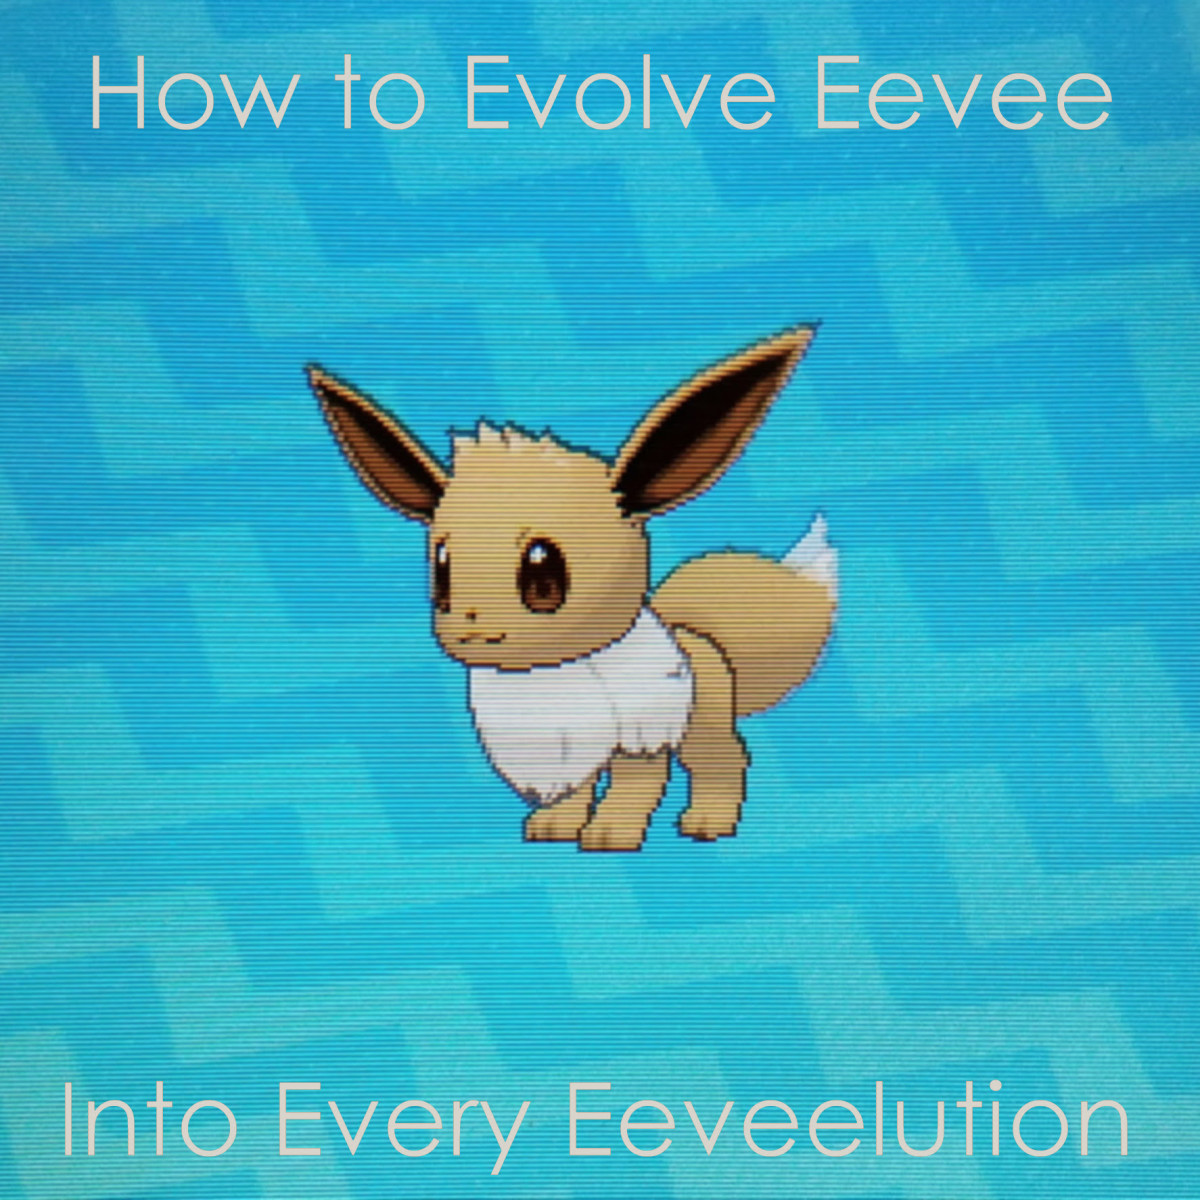 Learn how to evolve Eevee into all of its types, from Fire-type Flareon to Fairy-type Sylveon and more!